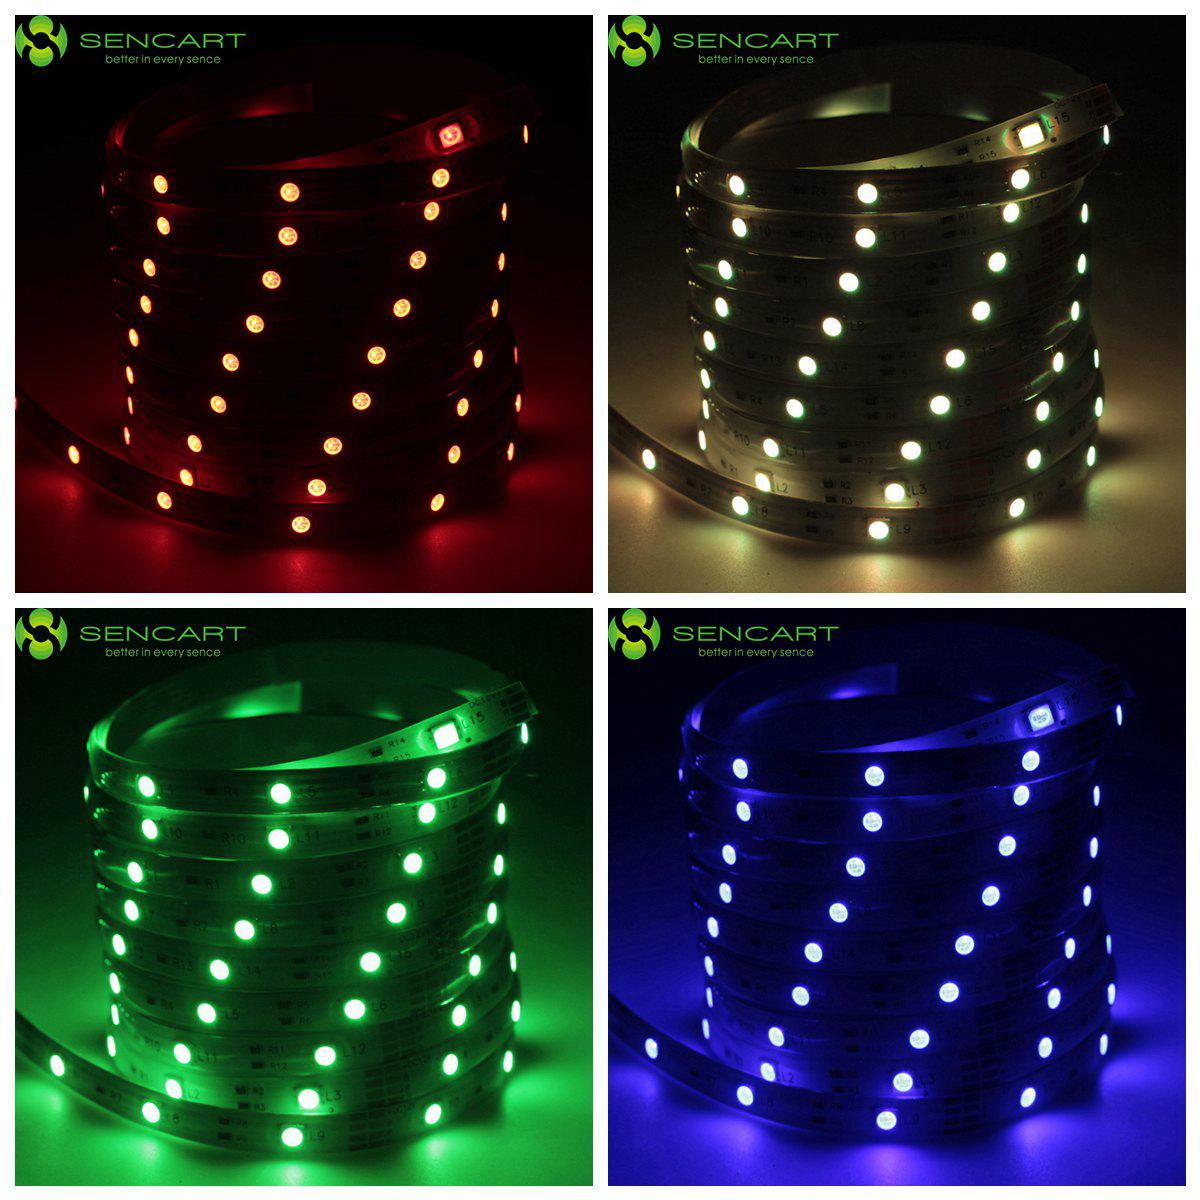 SENCART 2M 12W RGB 720LM 60 x SMD 5050 Waterproof Flexible LED Light Strip ( DC 12V ) - RGB COLOR